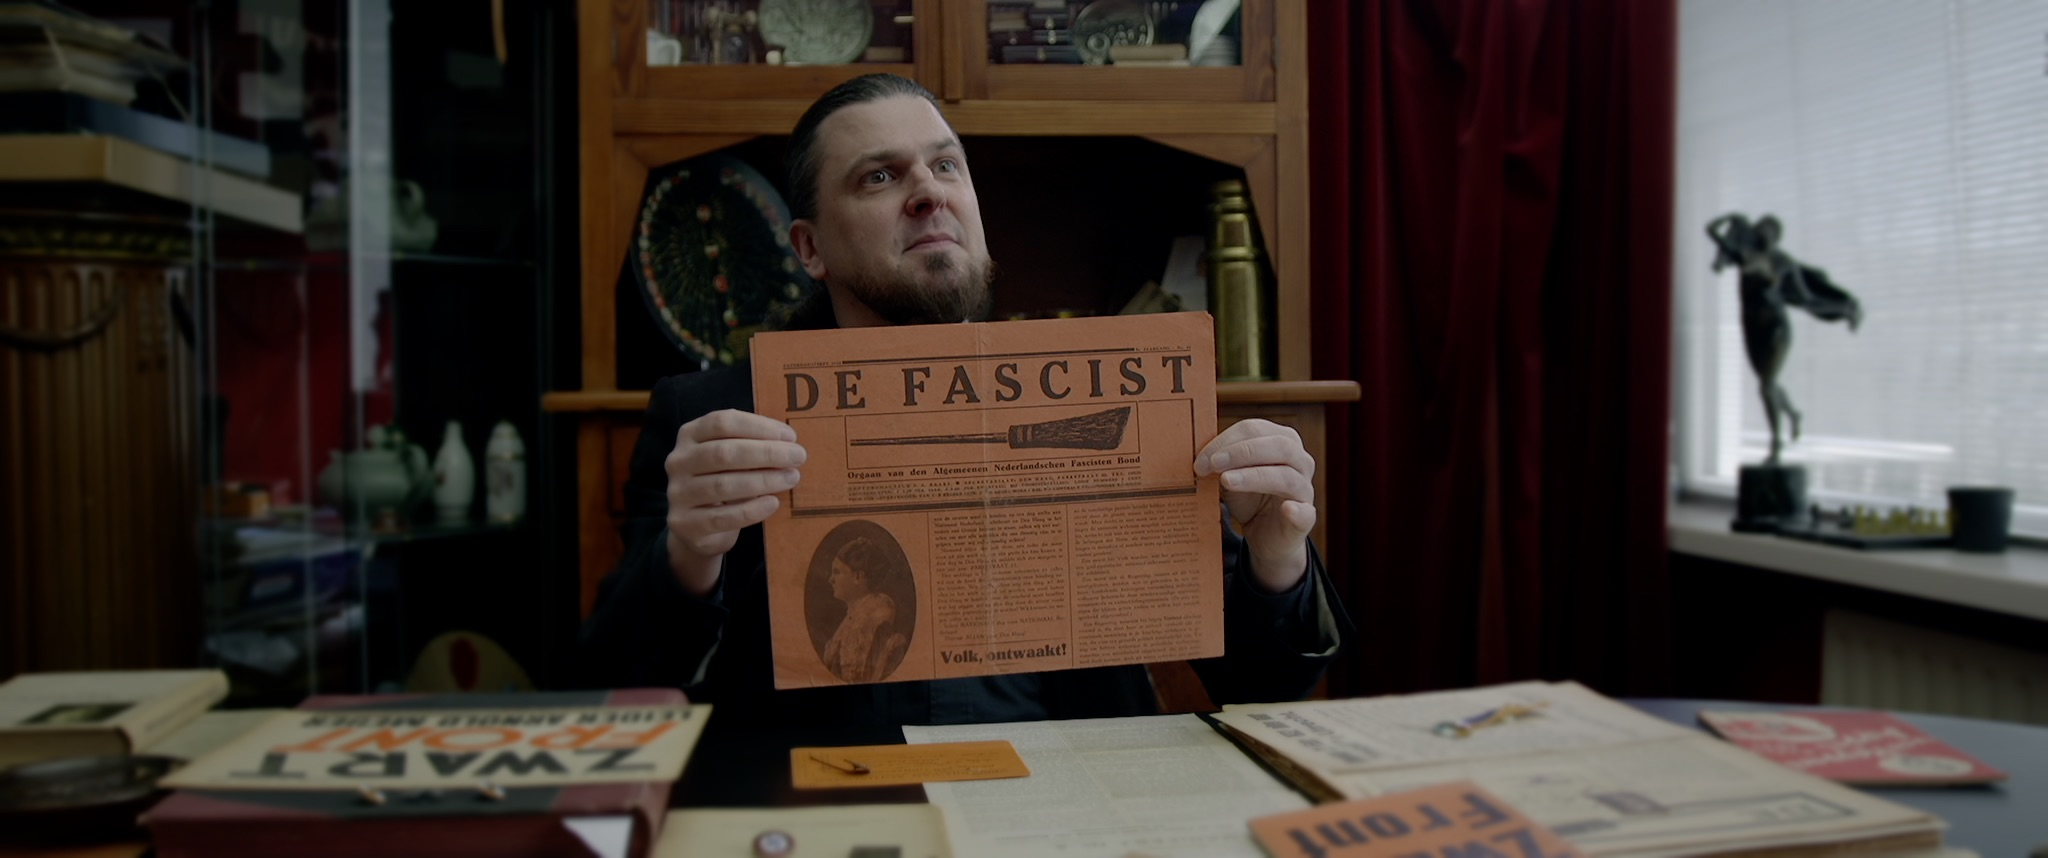 Fascism, Jan Baars, newspaper De Fascist, The Fascist, the people, Algemene Nederlandse Fascisten Bond, De Bezem, populism, collector